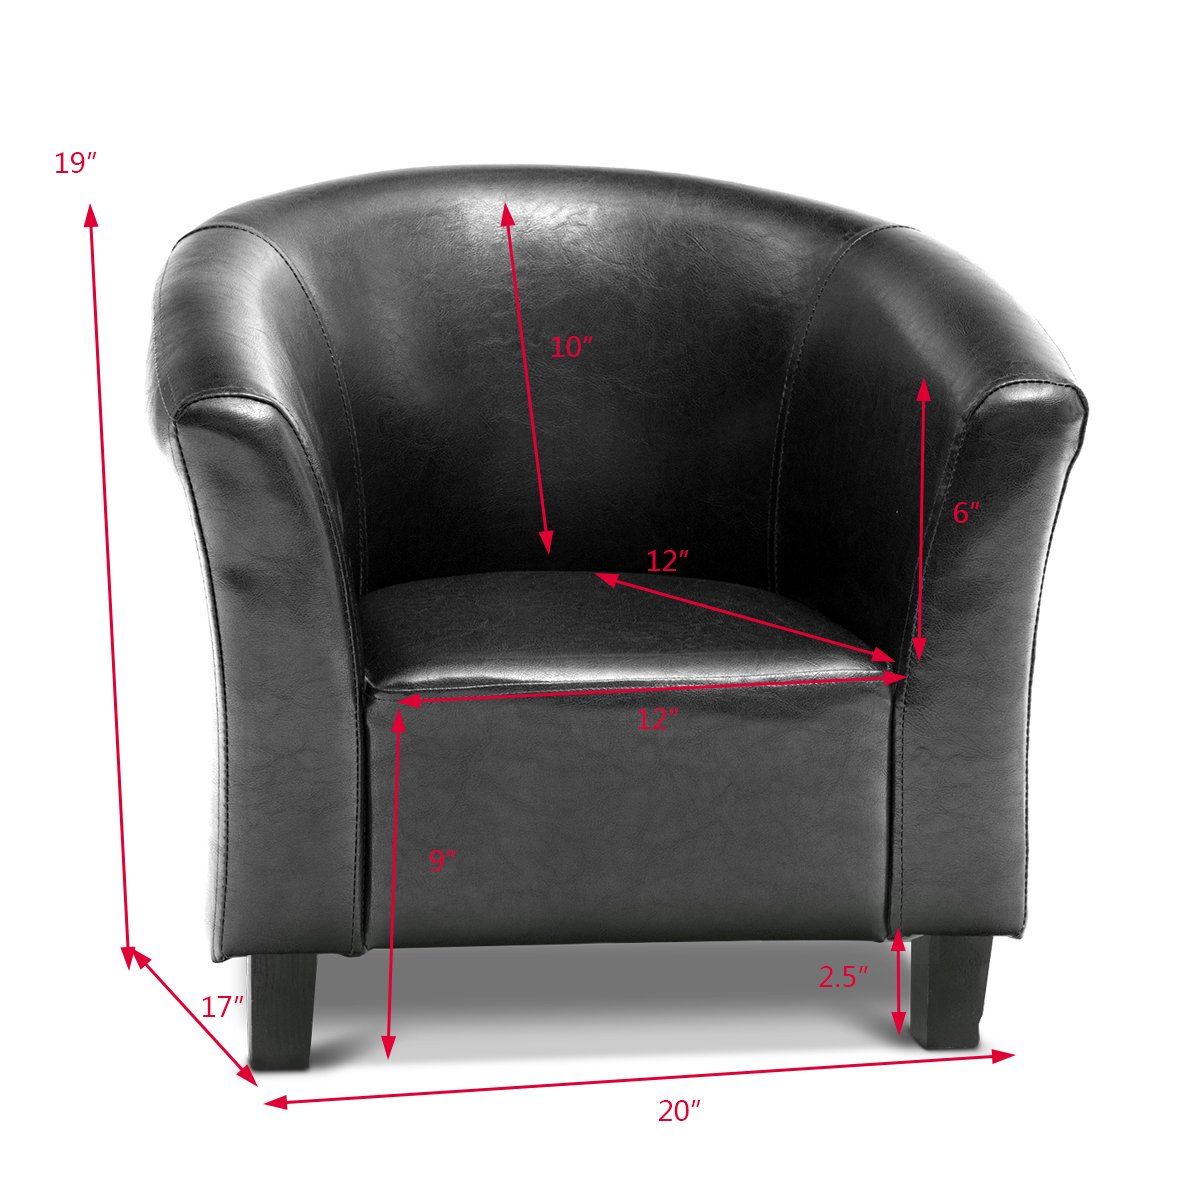 Costzon Kids Sofa Tub Chair Couch Children Living Room Toddler Furniture (PU Leather, Black) by Costzon (Image #6)